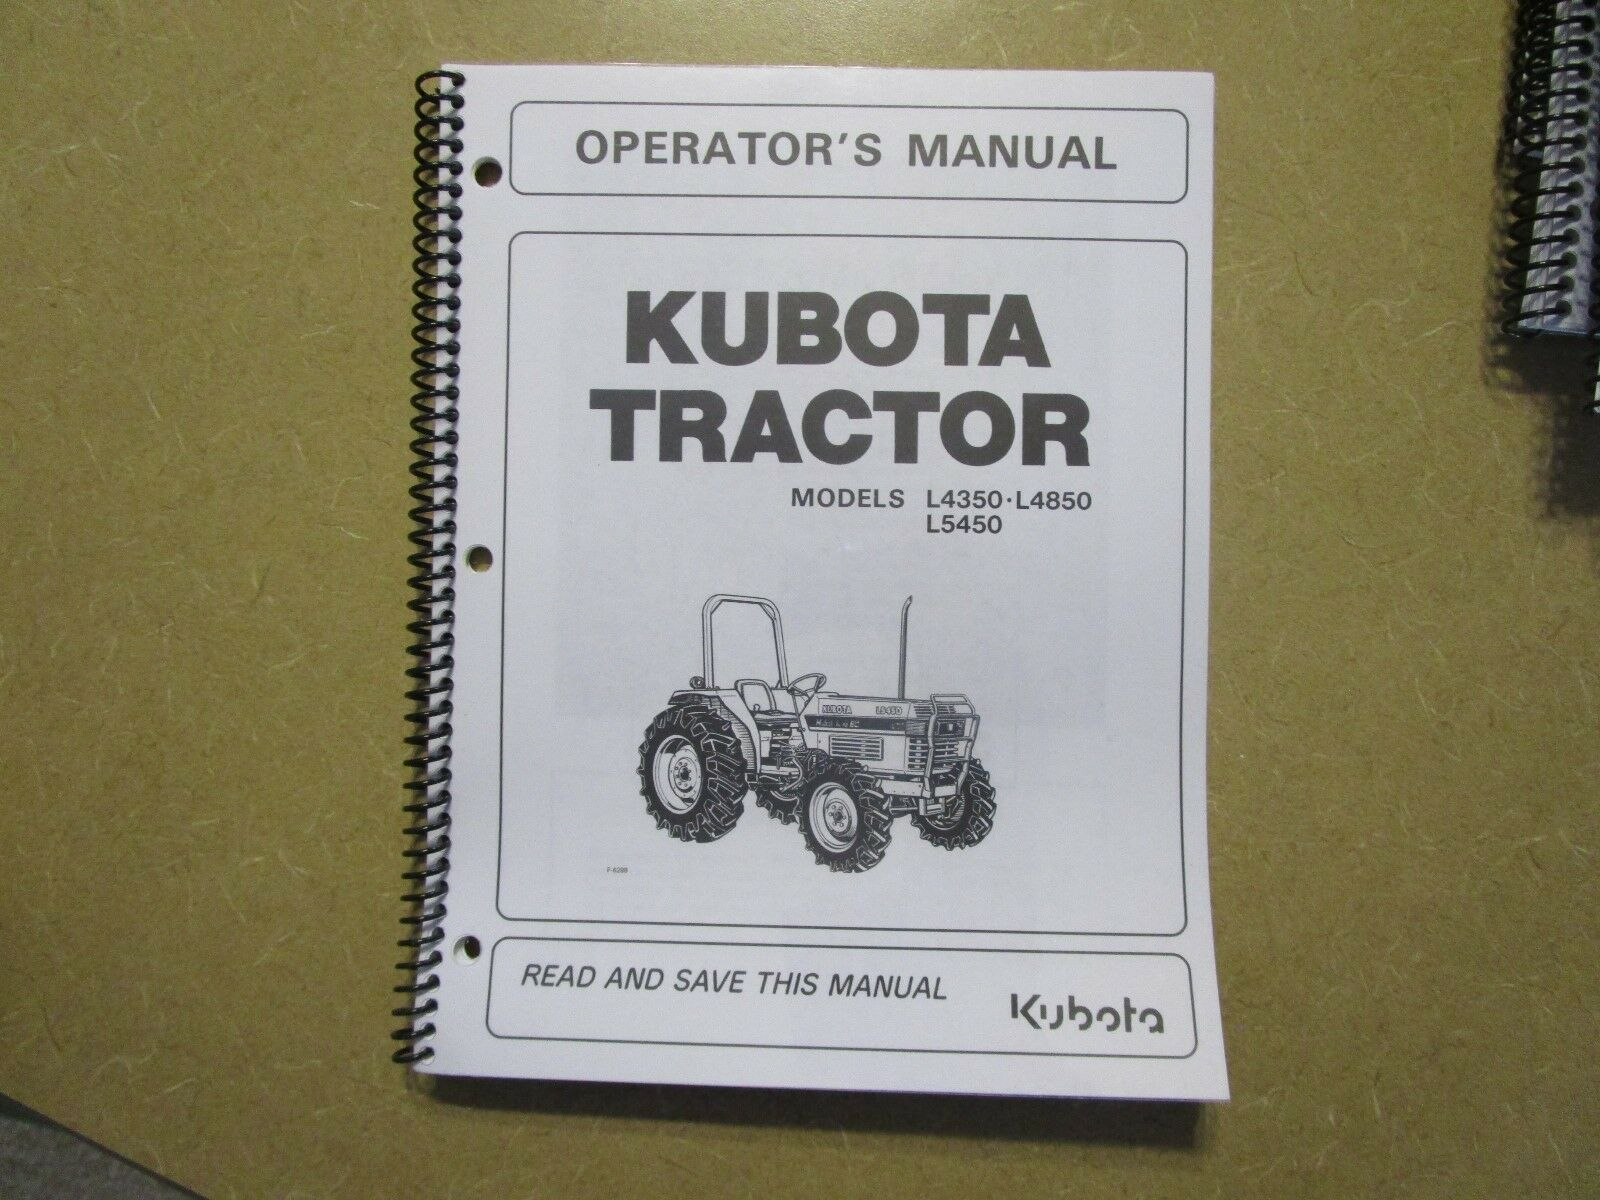 Kubota L4350 L4850 L5450 L4350 4850 5450 tractor owners & maintenance manual  1 of 1Only 1 available See More